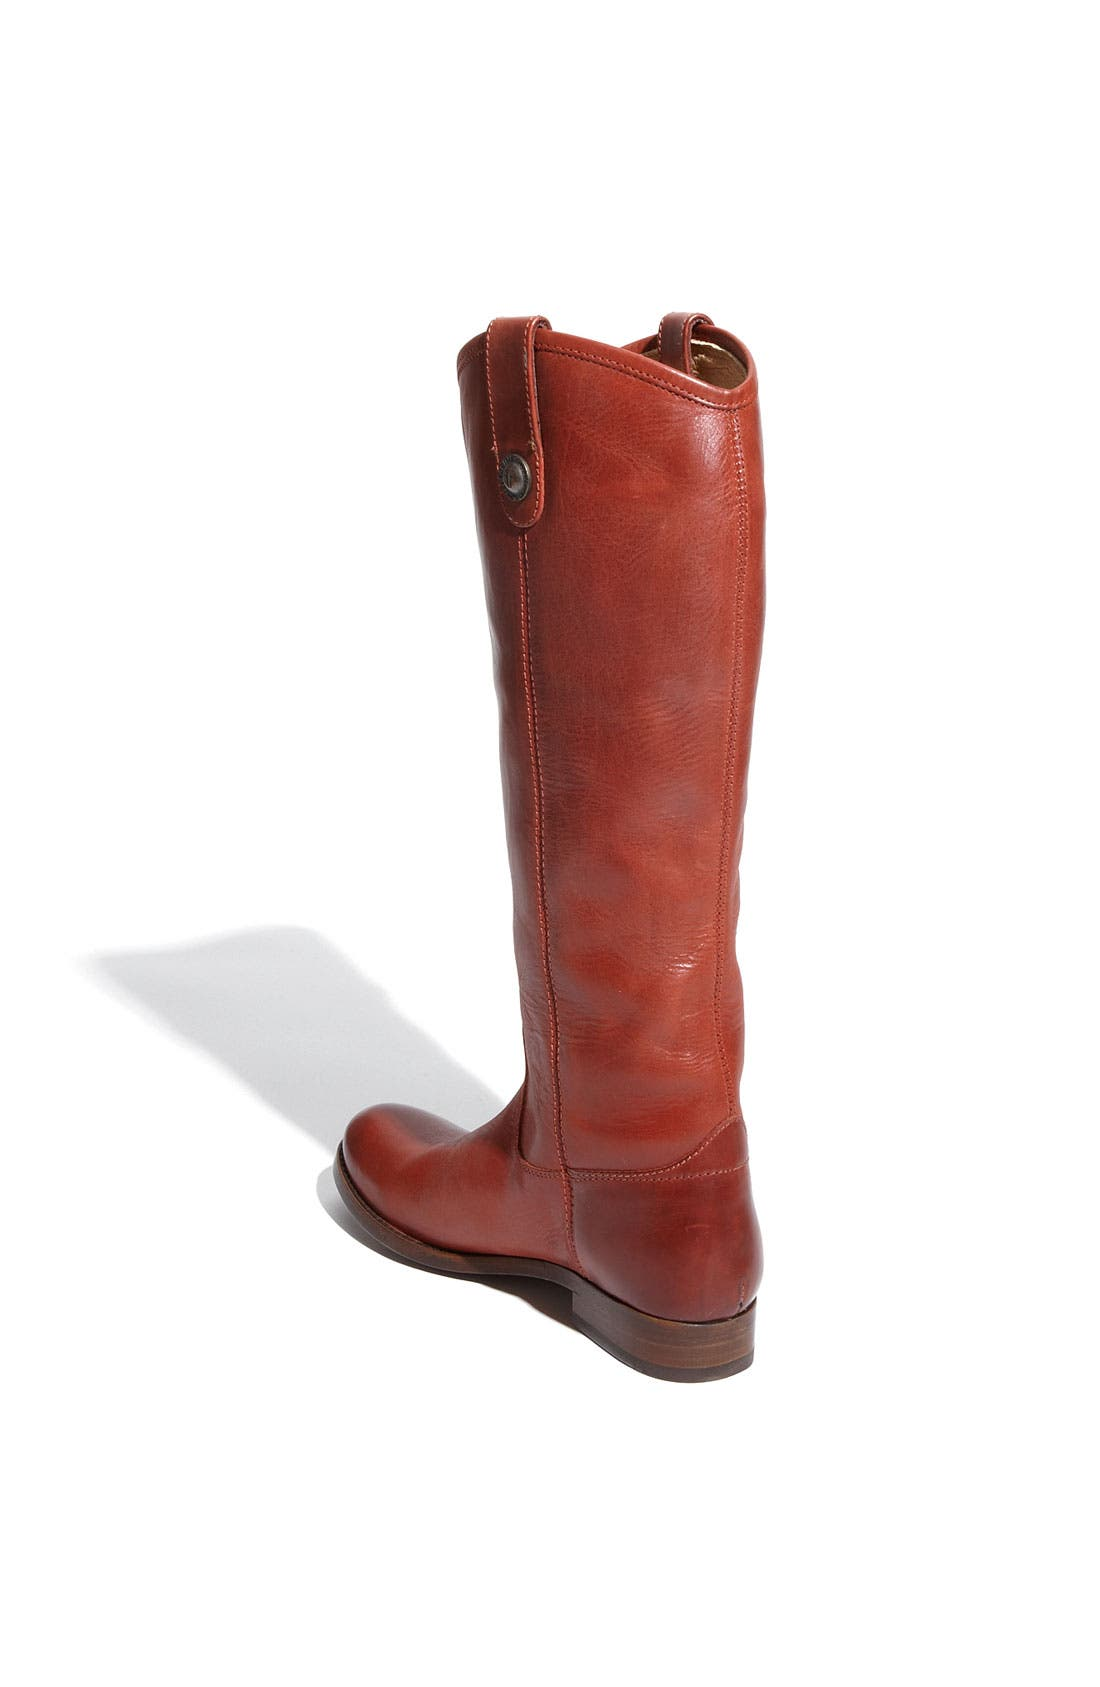 'Melissa Button' Leather Riding Boot,                             Alternate thumbnail 92, color,